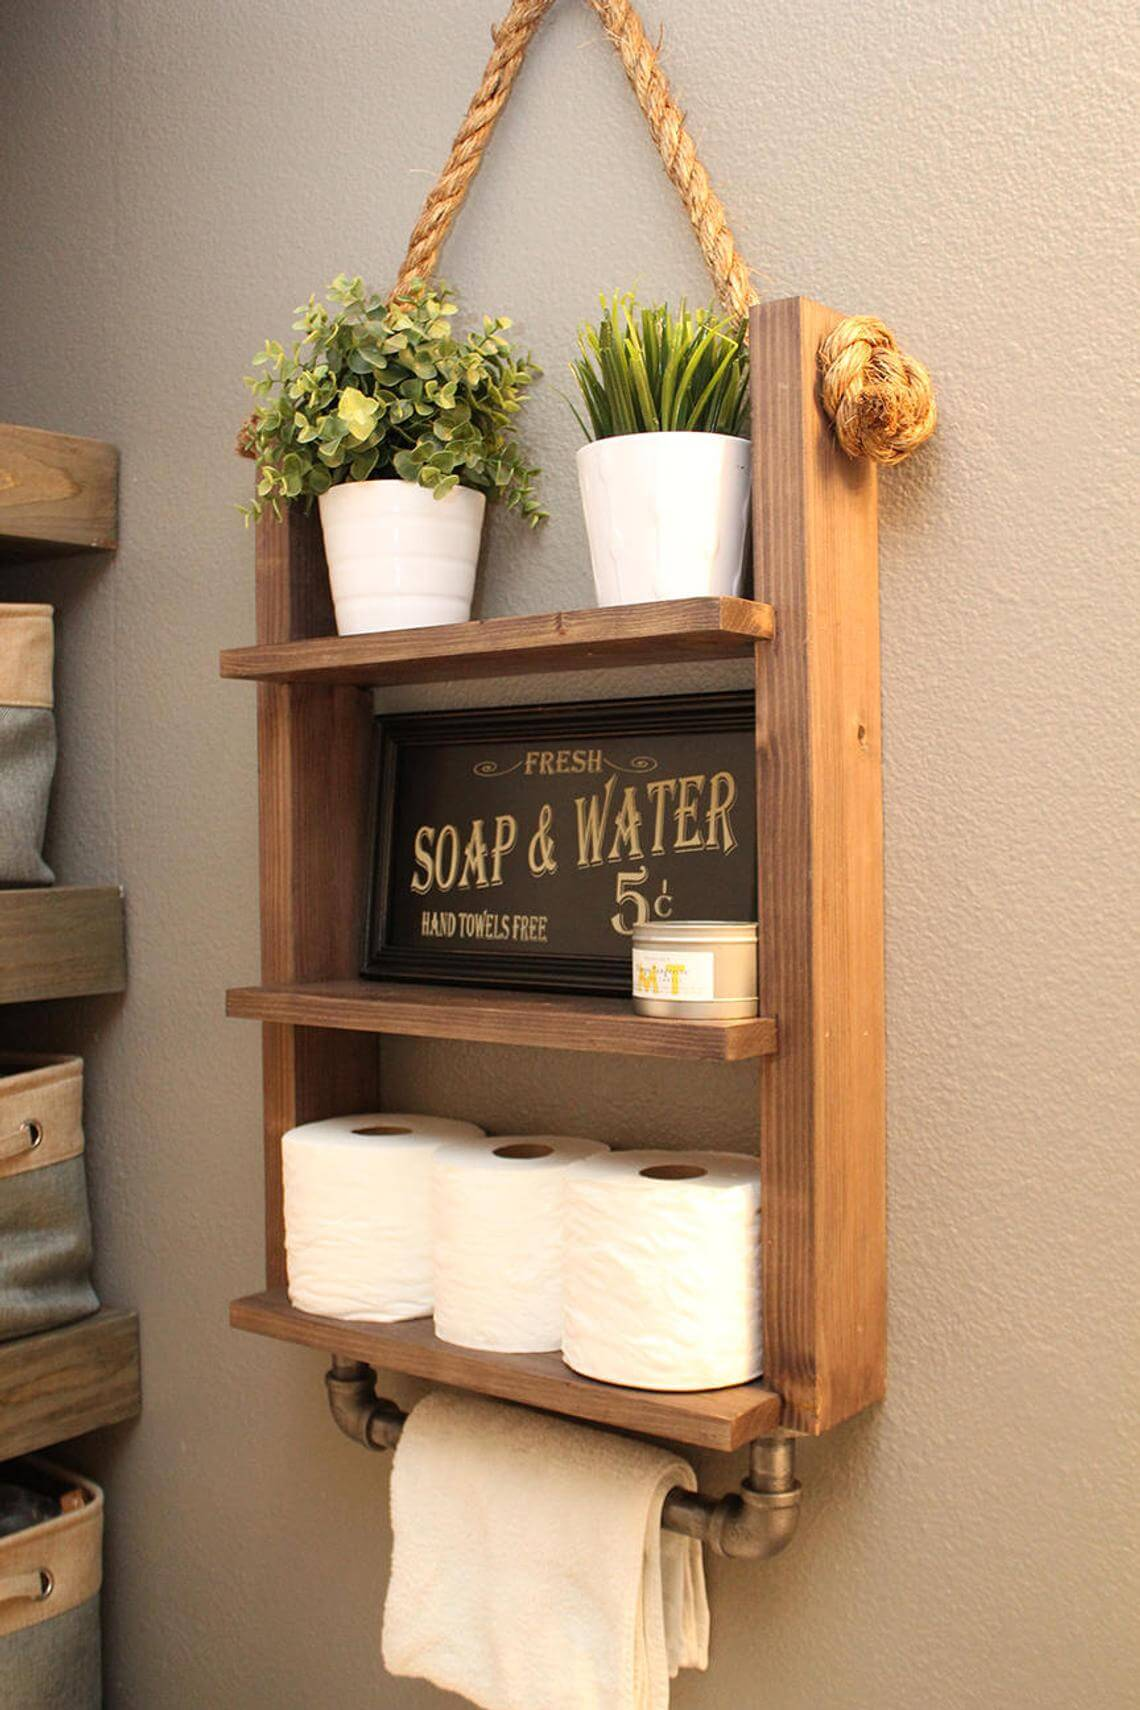 Simple and Industrial Large Wooden Wall Shelf